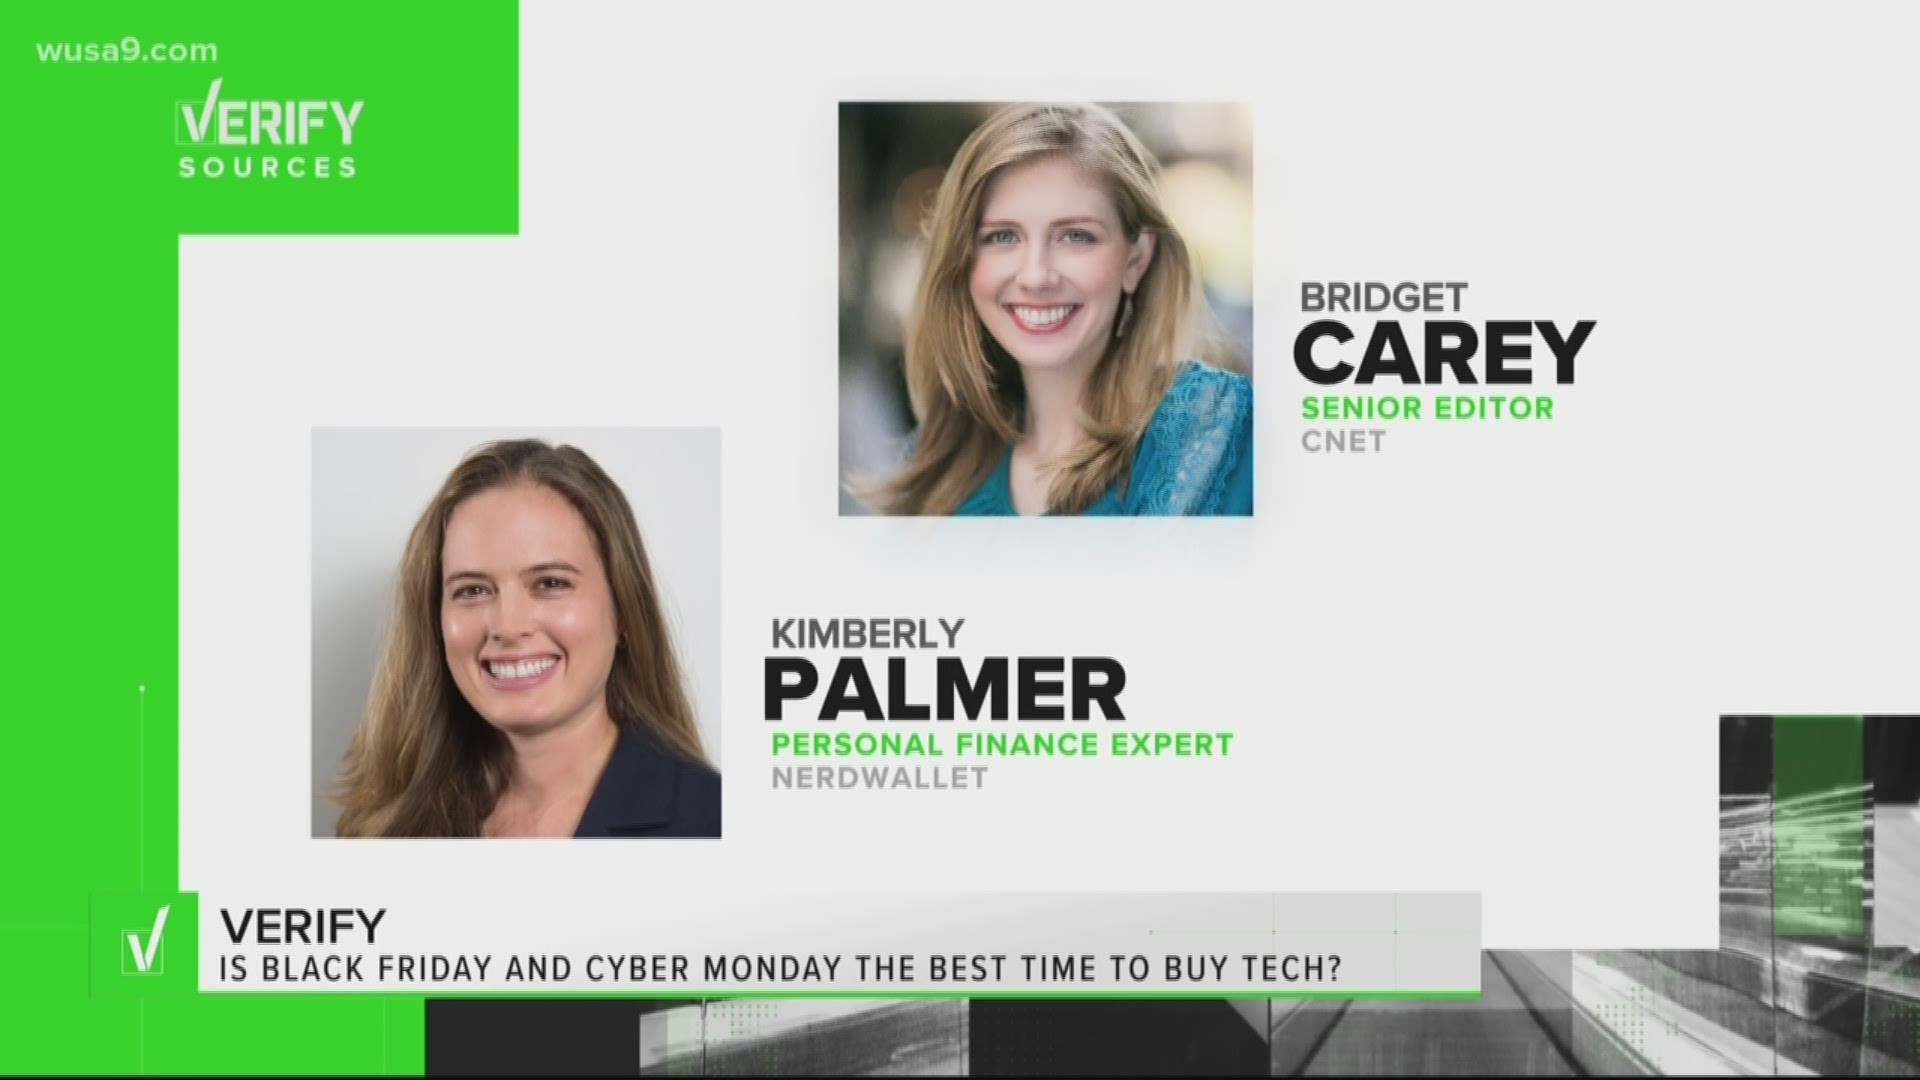 Should You Purchase Electronics On Black Friday And Cyber Monday Wusa9 Com